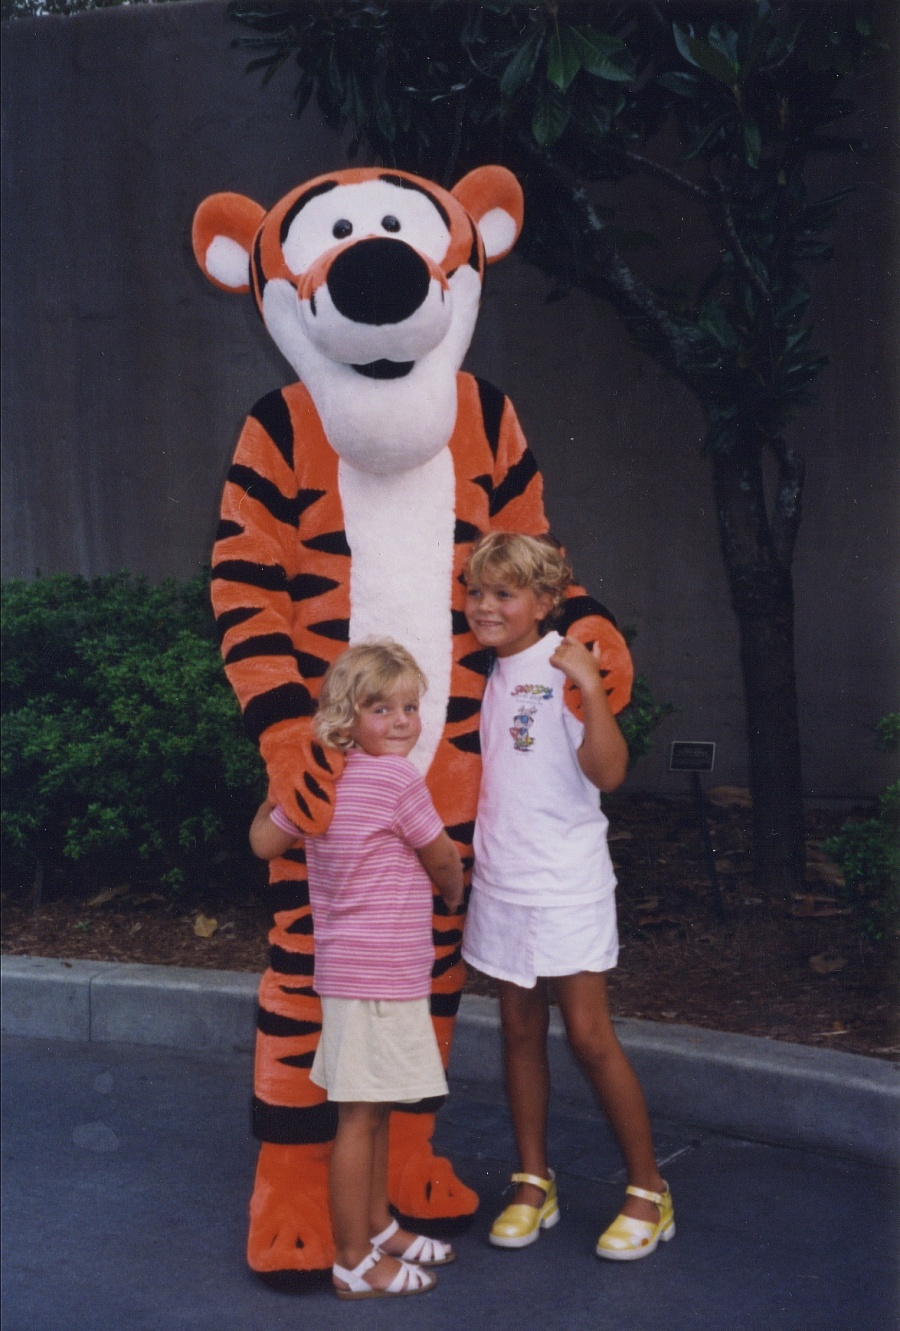 walt disney world, character meet and great, tigger